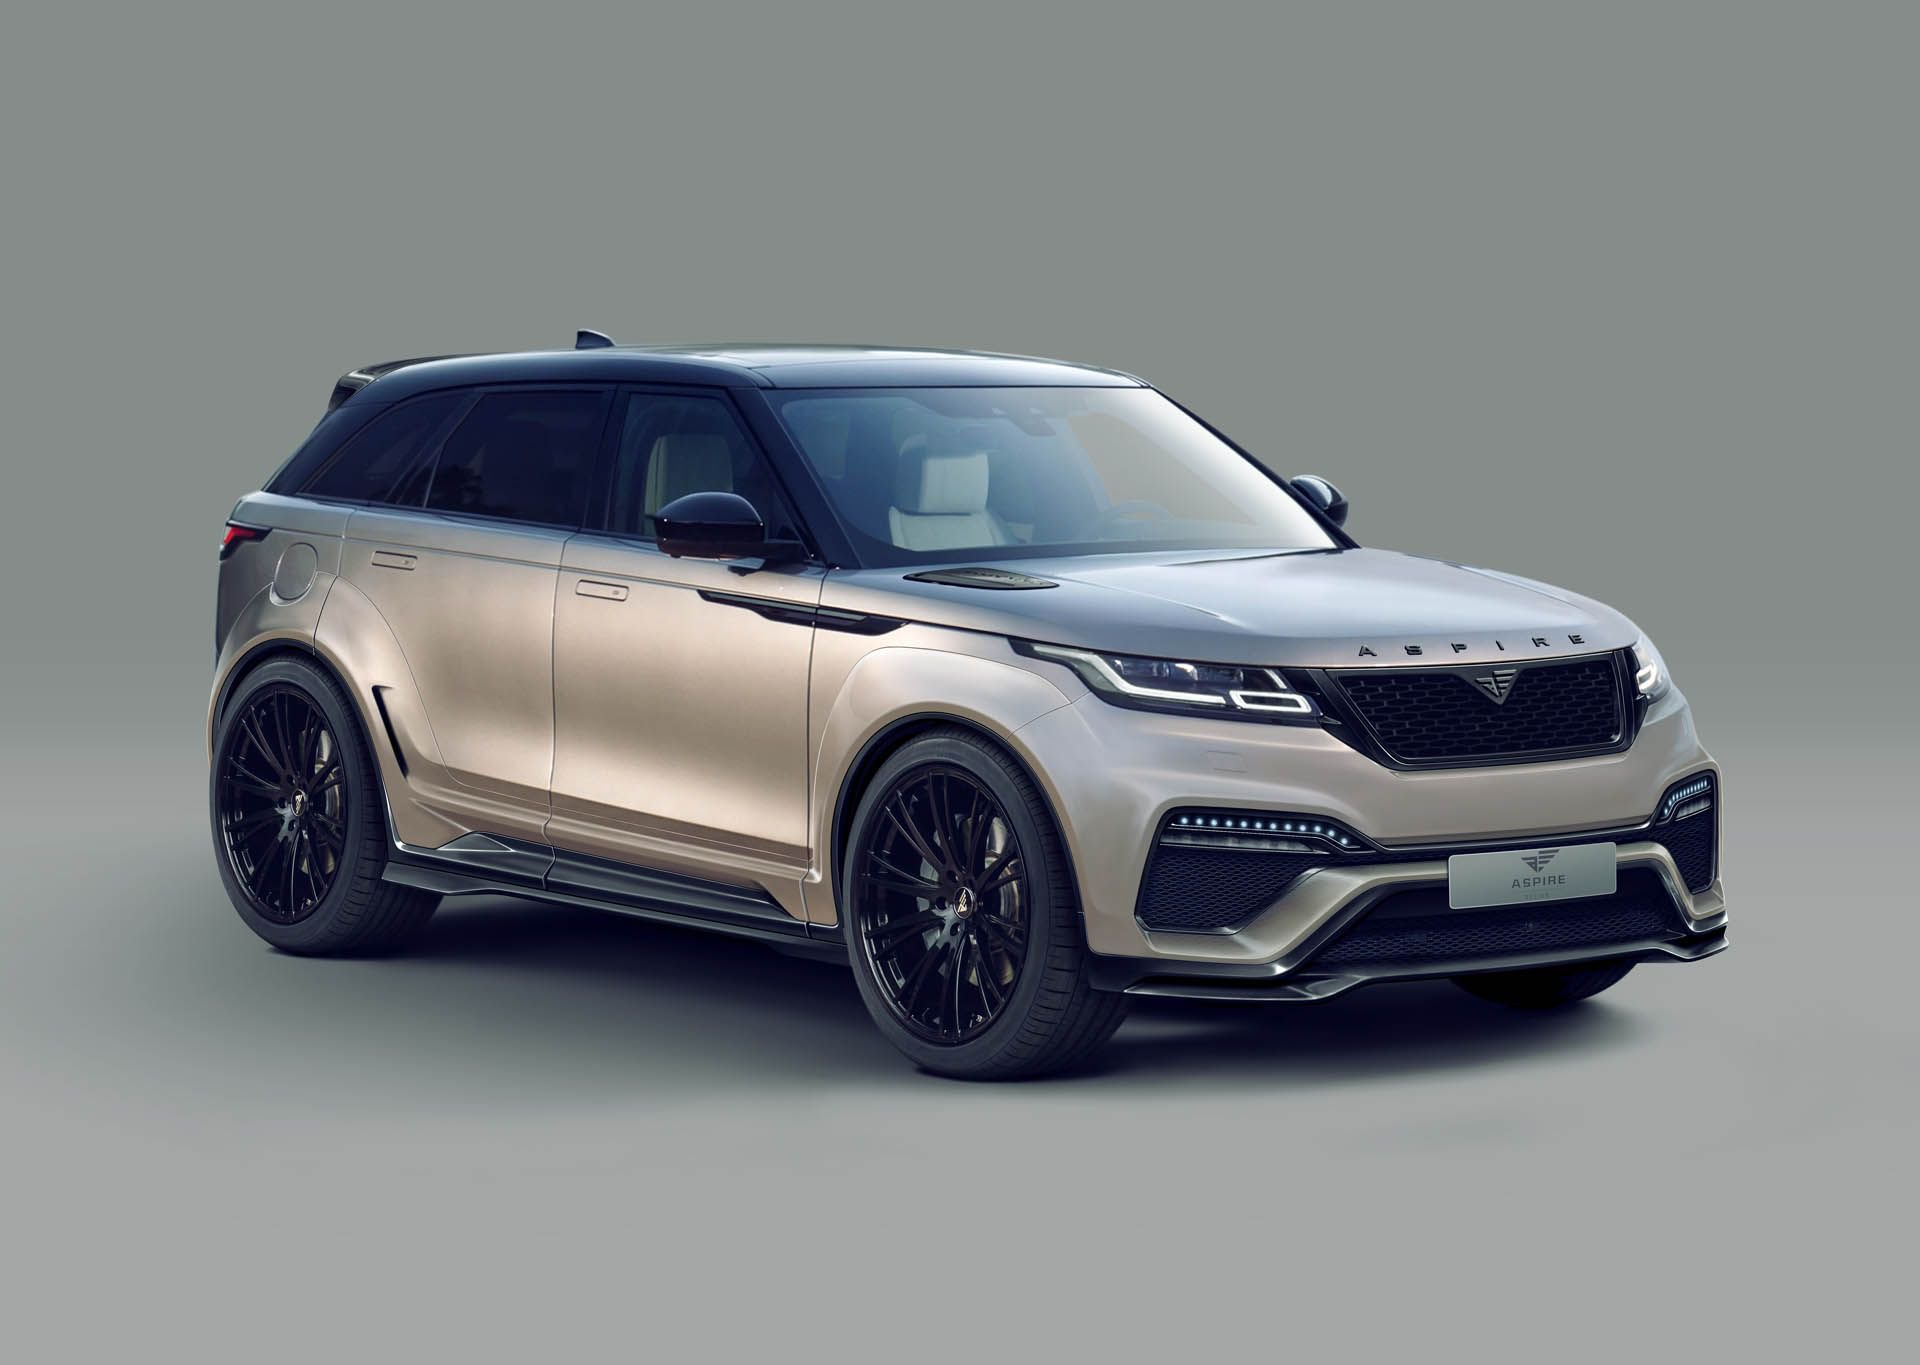 Range Rover Velar by Aspire Design (7)